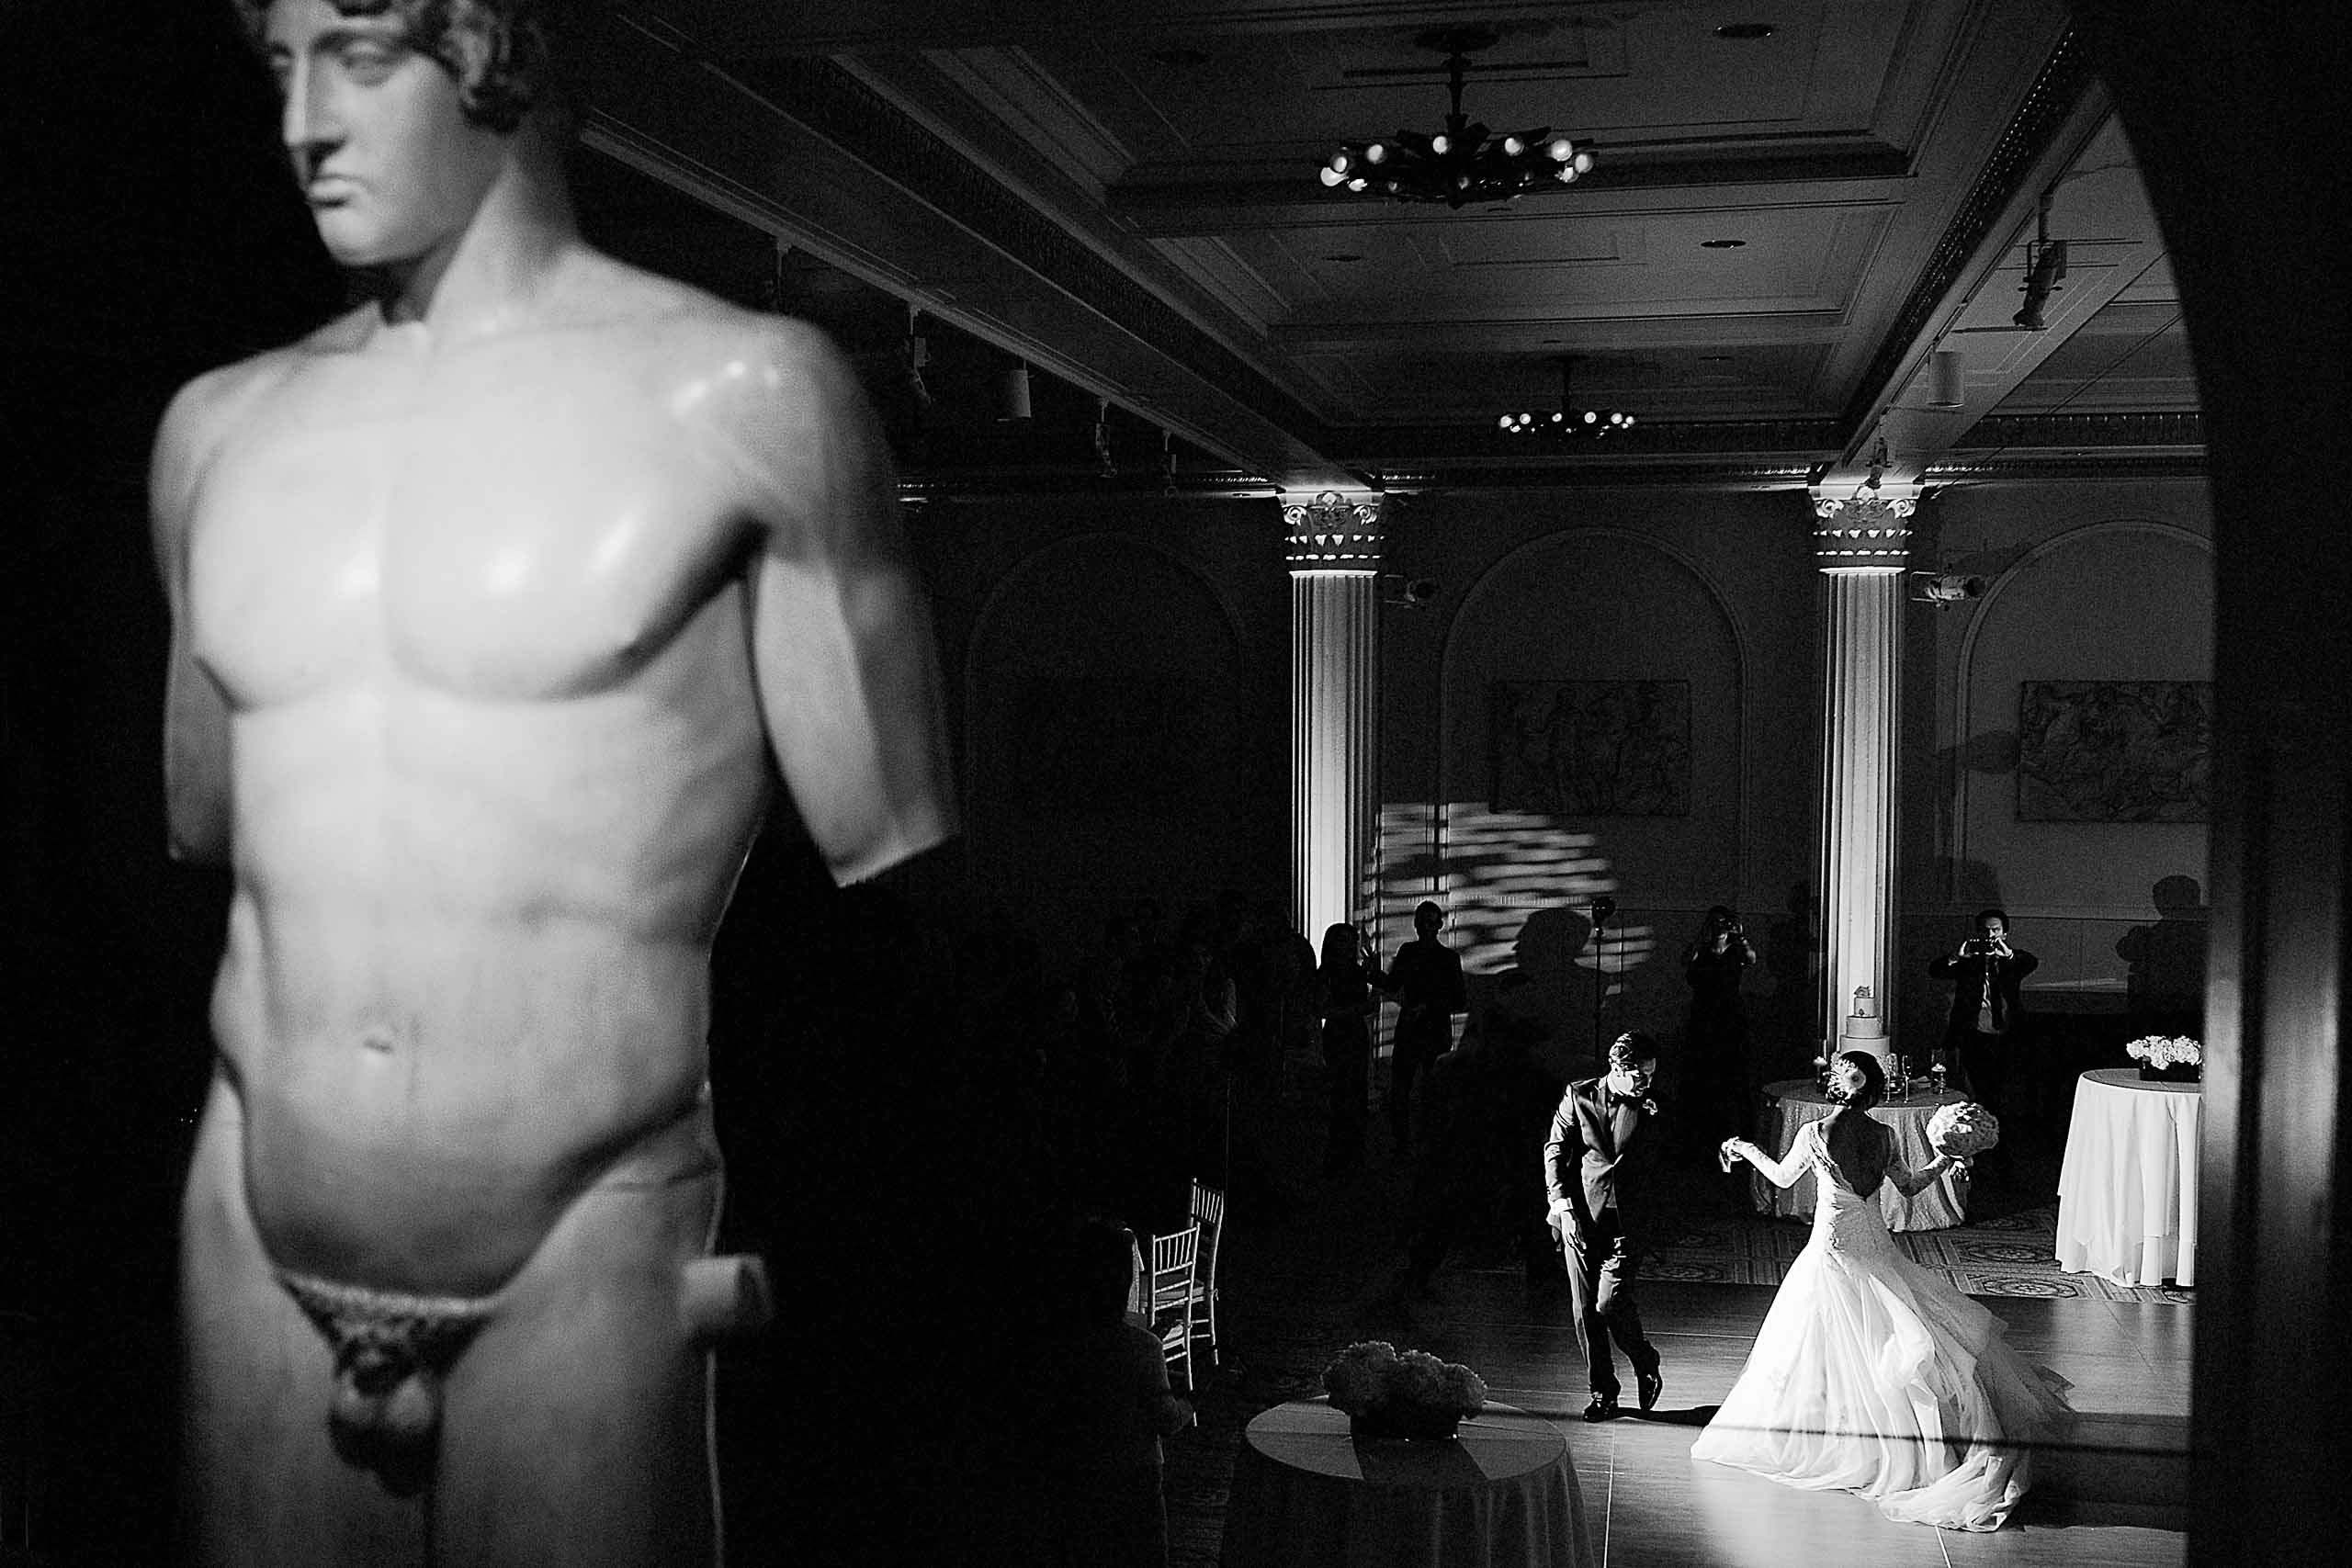 A first dance photo of a Persian bride and groom surrounded by statues during their Portland Persian wedding at the Portland Art Museum